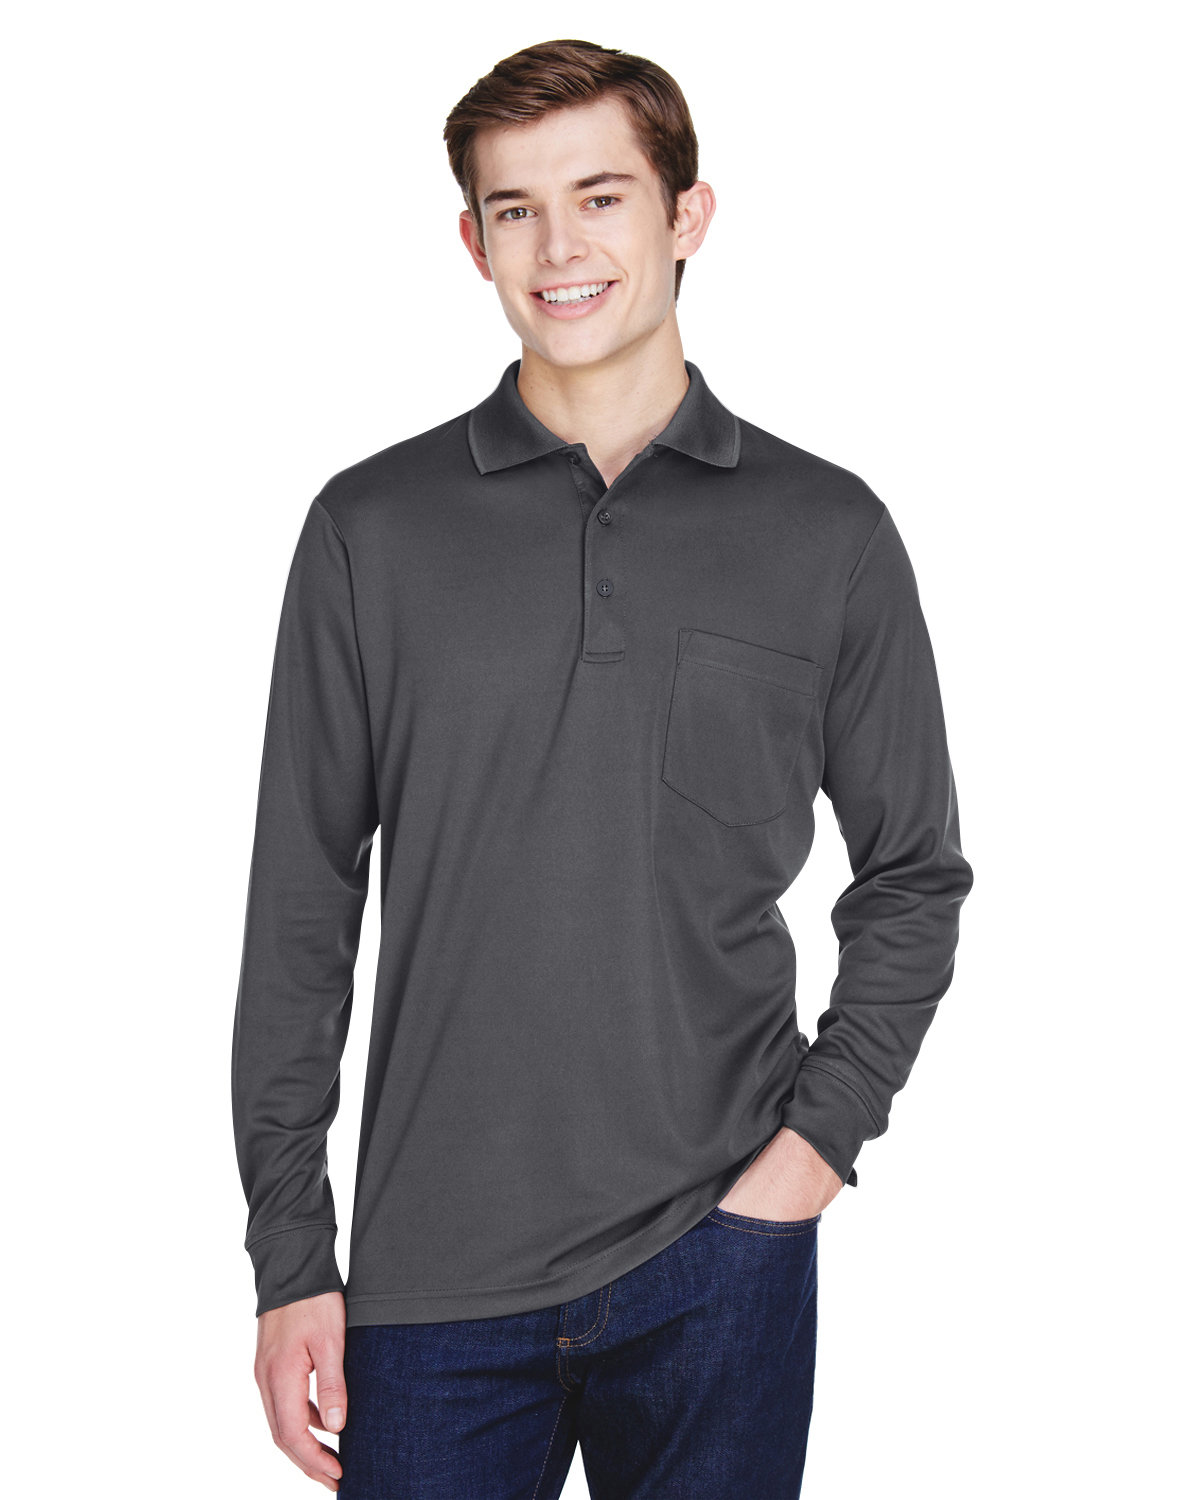 Core 365 Adult Pinnacle Performance Long-Sleeve Piqué Polo with Pocket CARBON